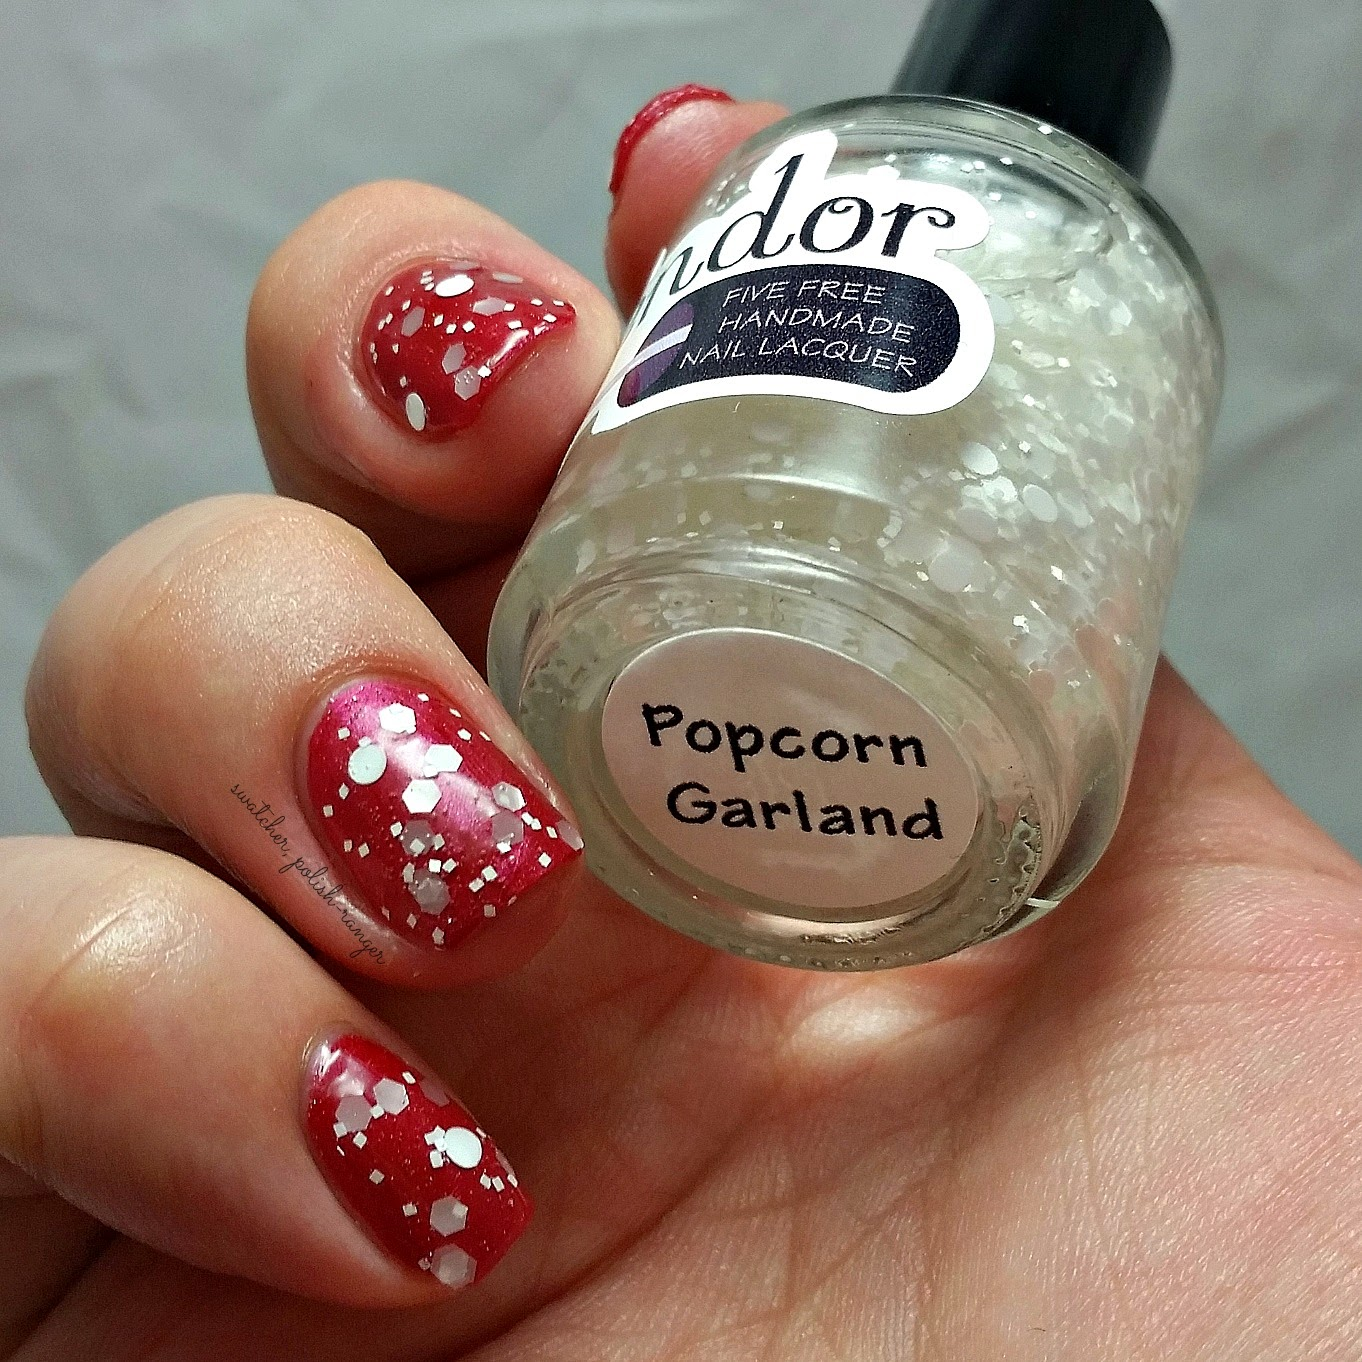 swatcher, polish-ranger | Splendor Nail Lacquer Popcorn Garland swatch (over Bing)